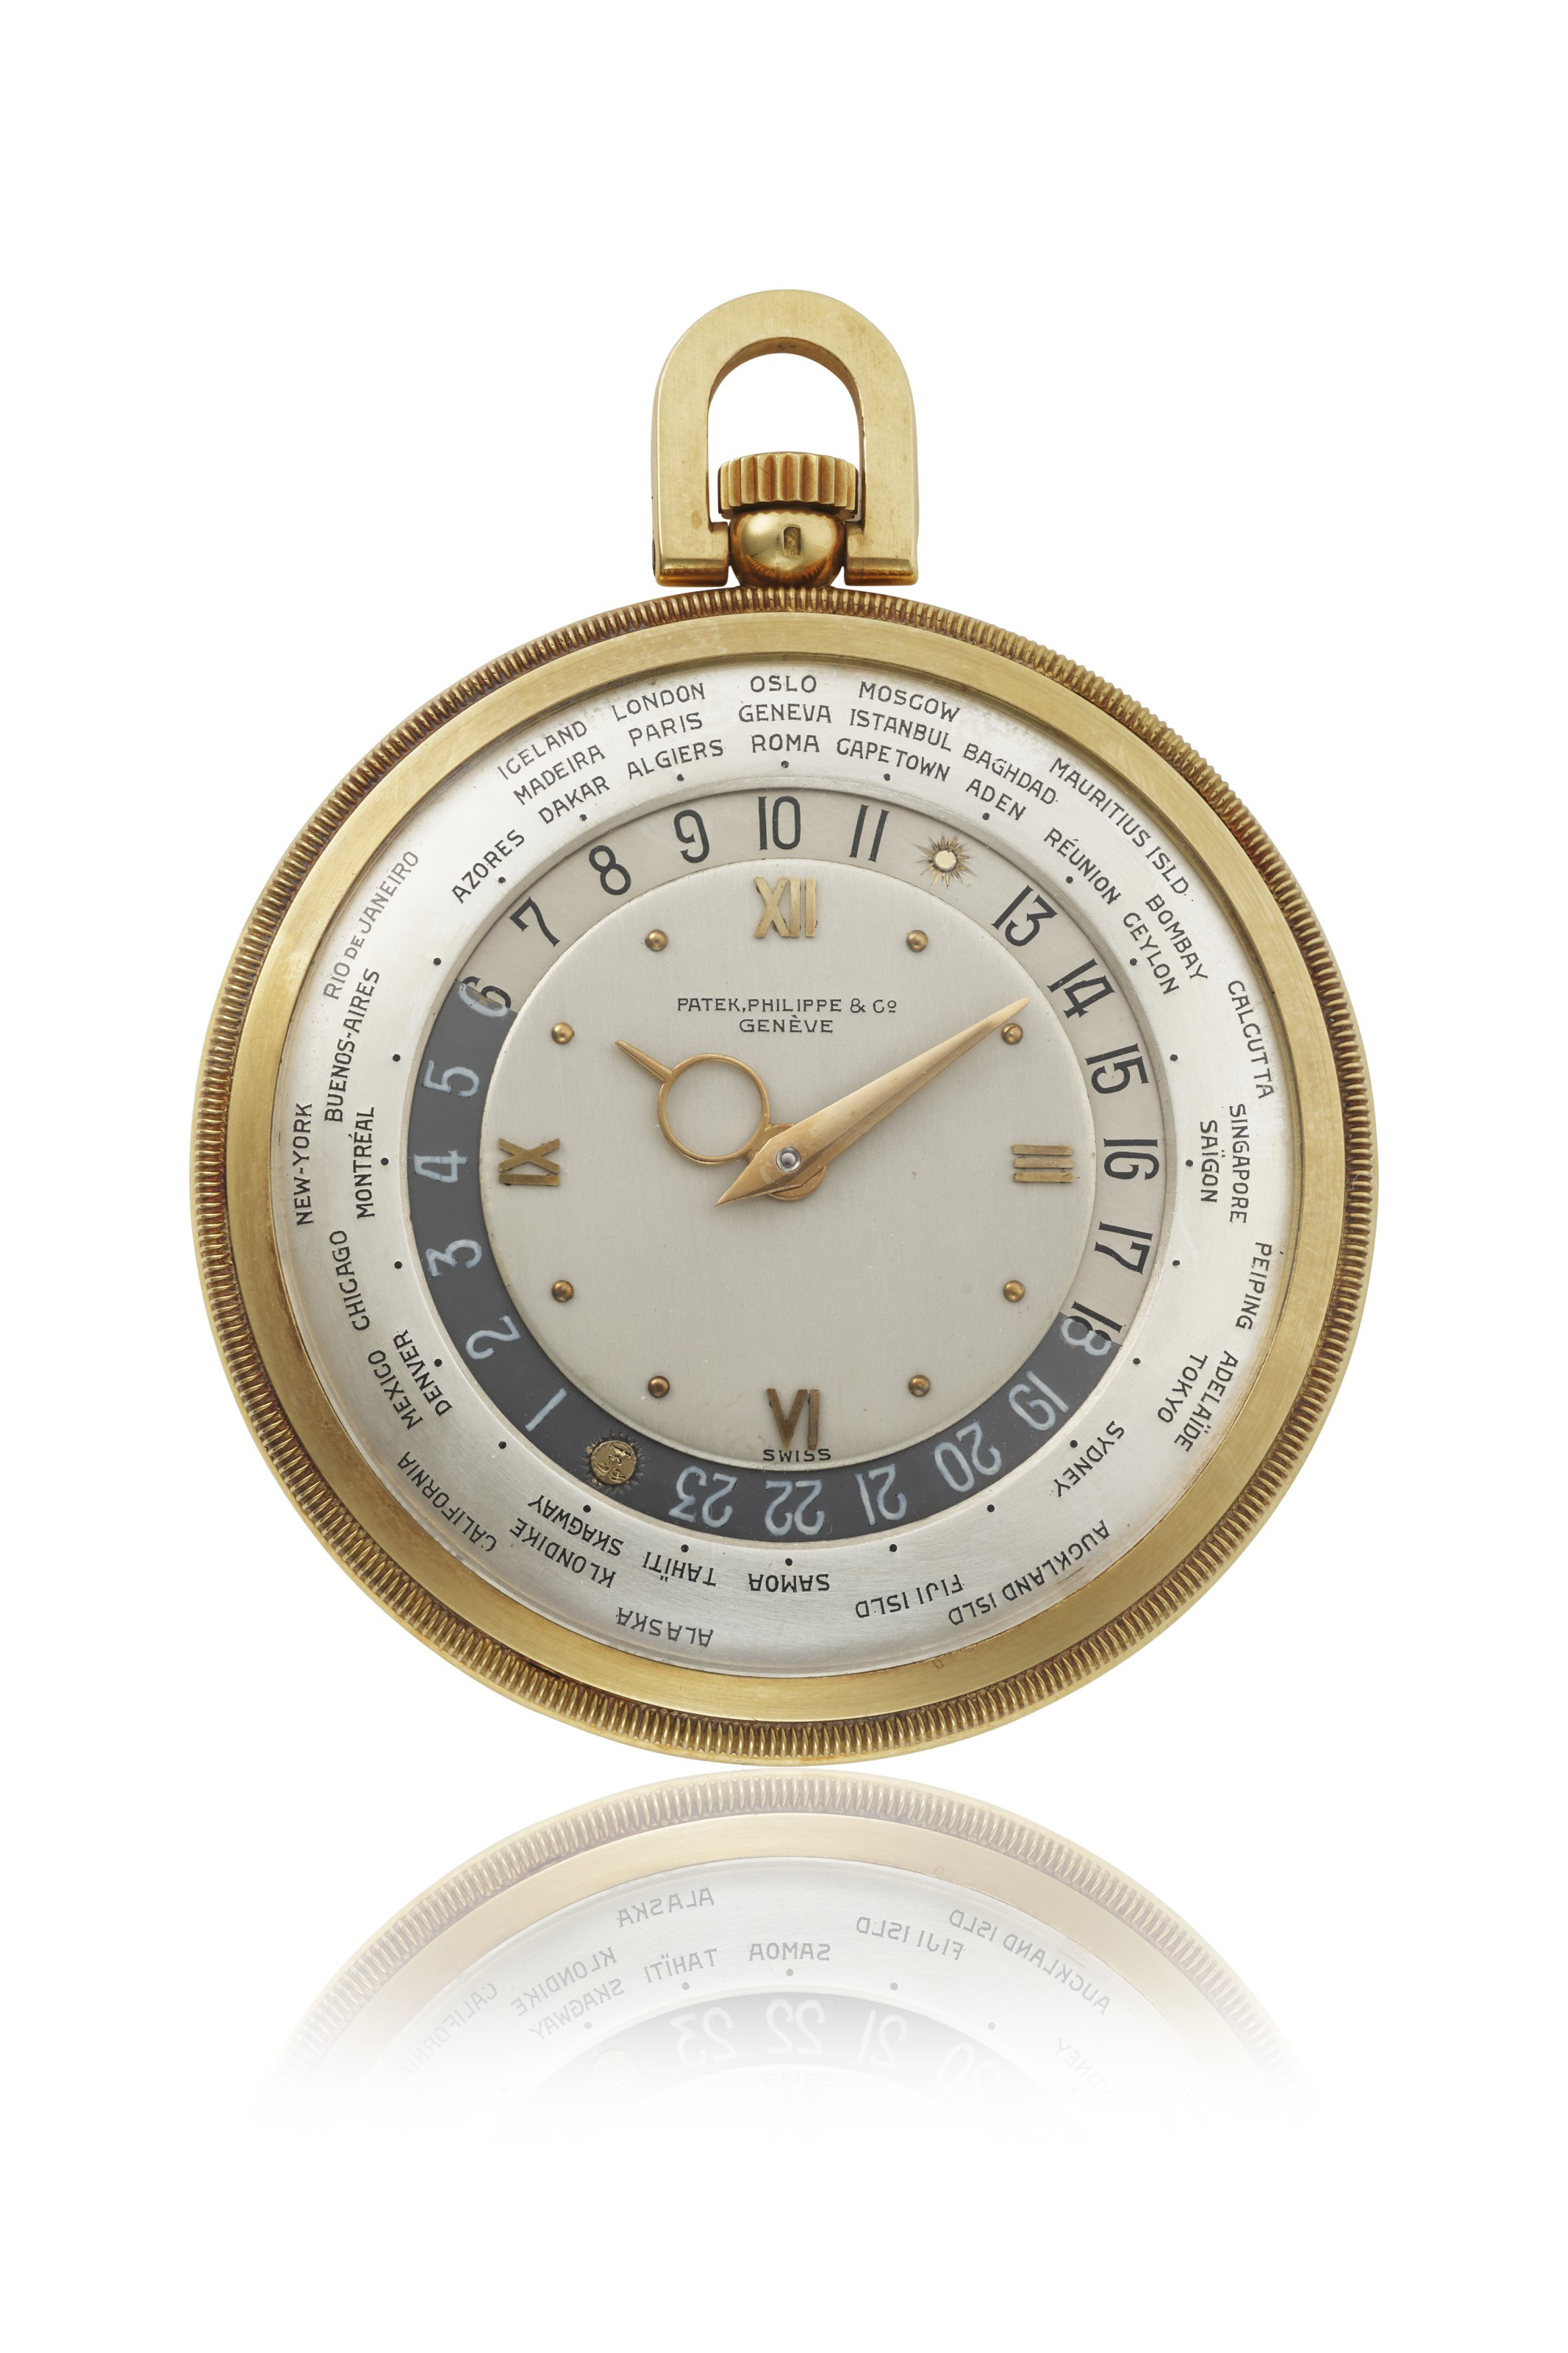 Patek Philippe, a fine and rare 18k gold open-face keyless lever World Time watch with later engraved coat of arms, 1944. Sold for CHF 137,500 on 10 May 2021 at Christie's in Geneva